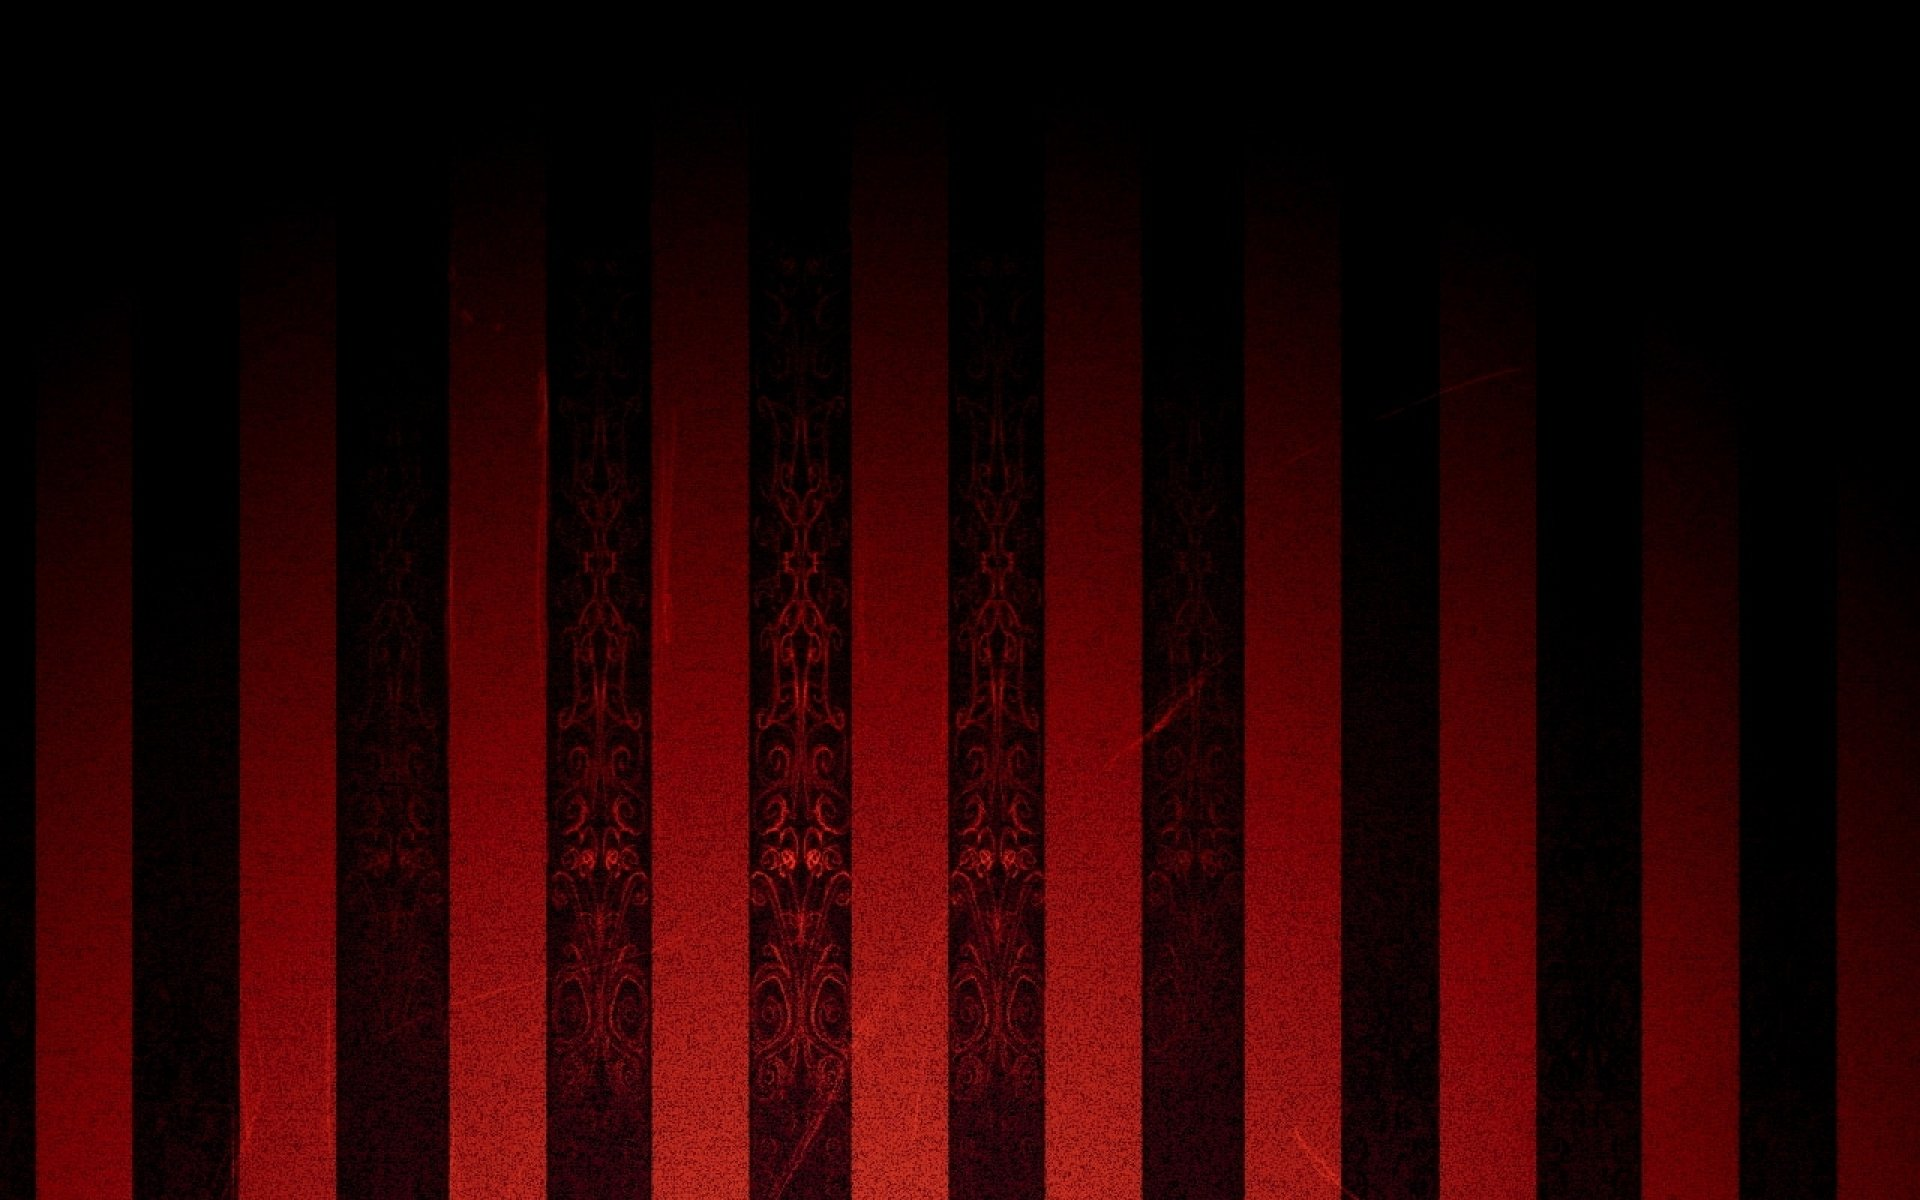 Black Red hd wallpaper for desktop Full HD Wallpapers Points 1920x1200